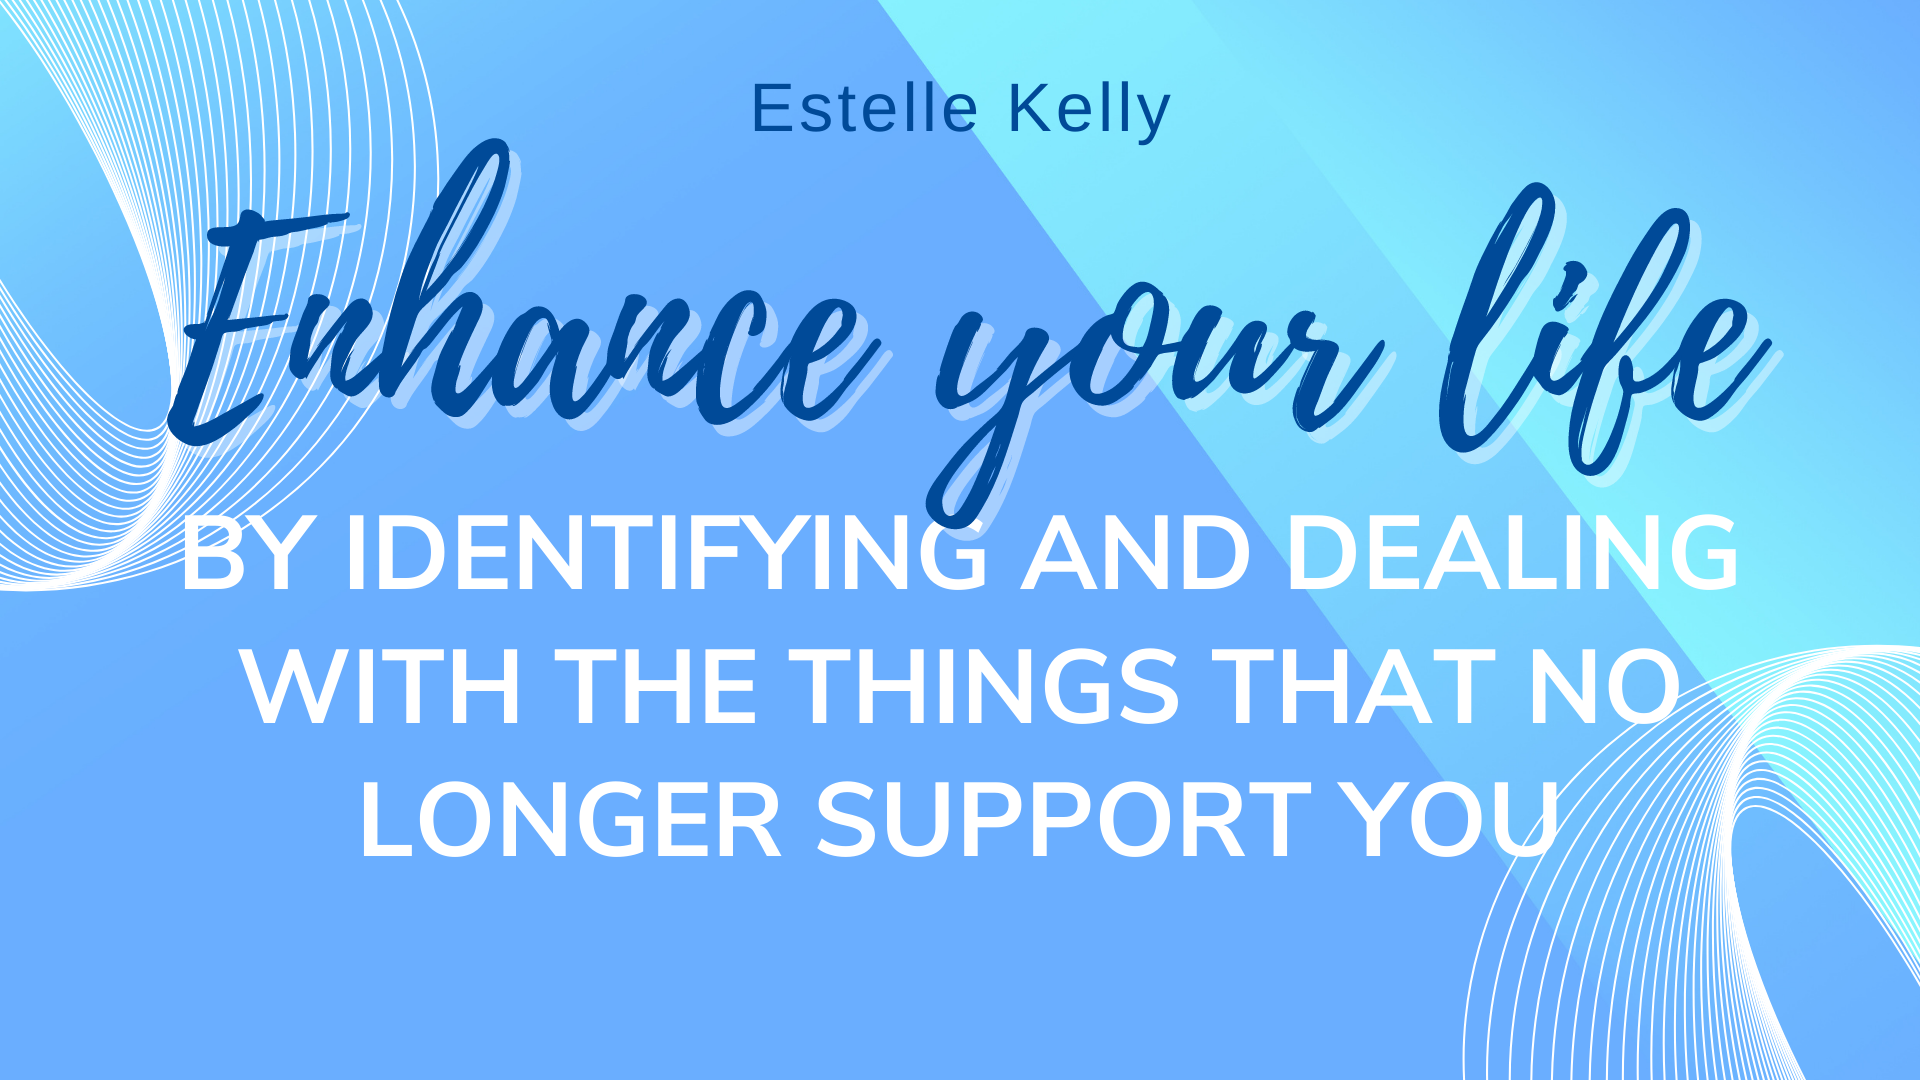 Read more about the article Enhance your life by identifying and dealing with the things that no longer support you